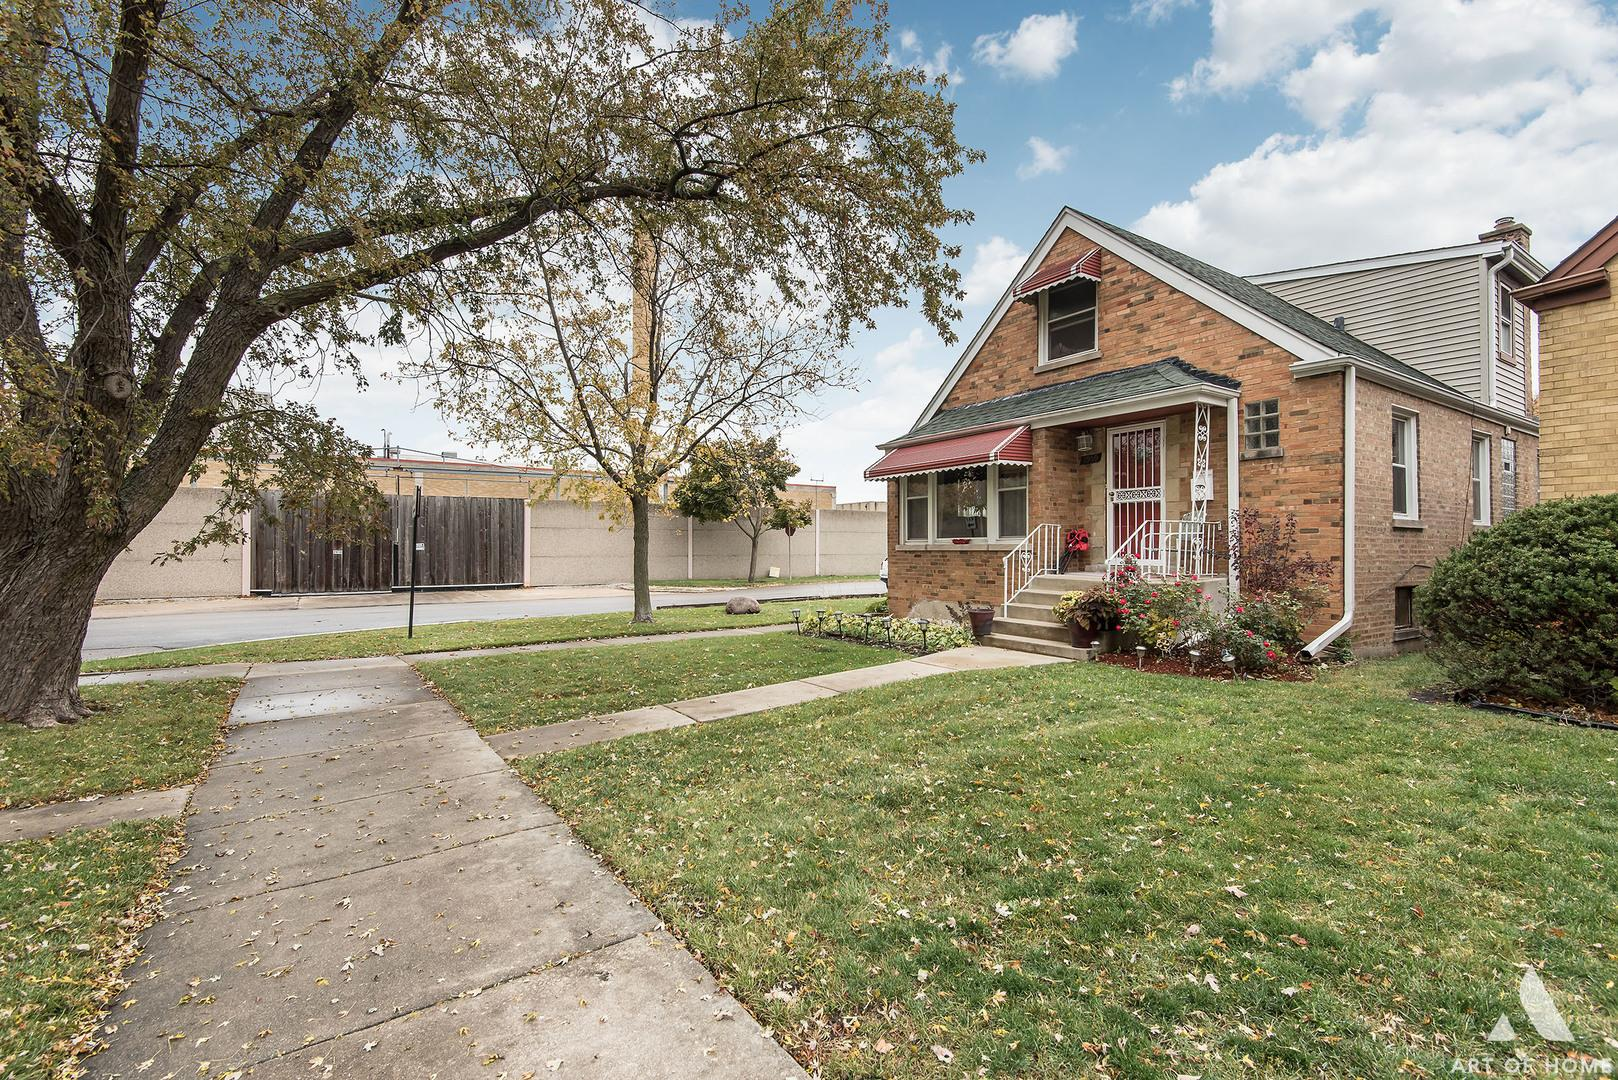 1959 N Normandy Ave Mls 10916980 Chicago Il 60607 Rocket Homes